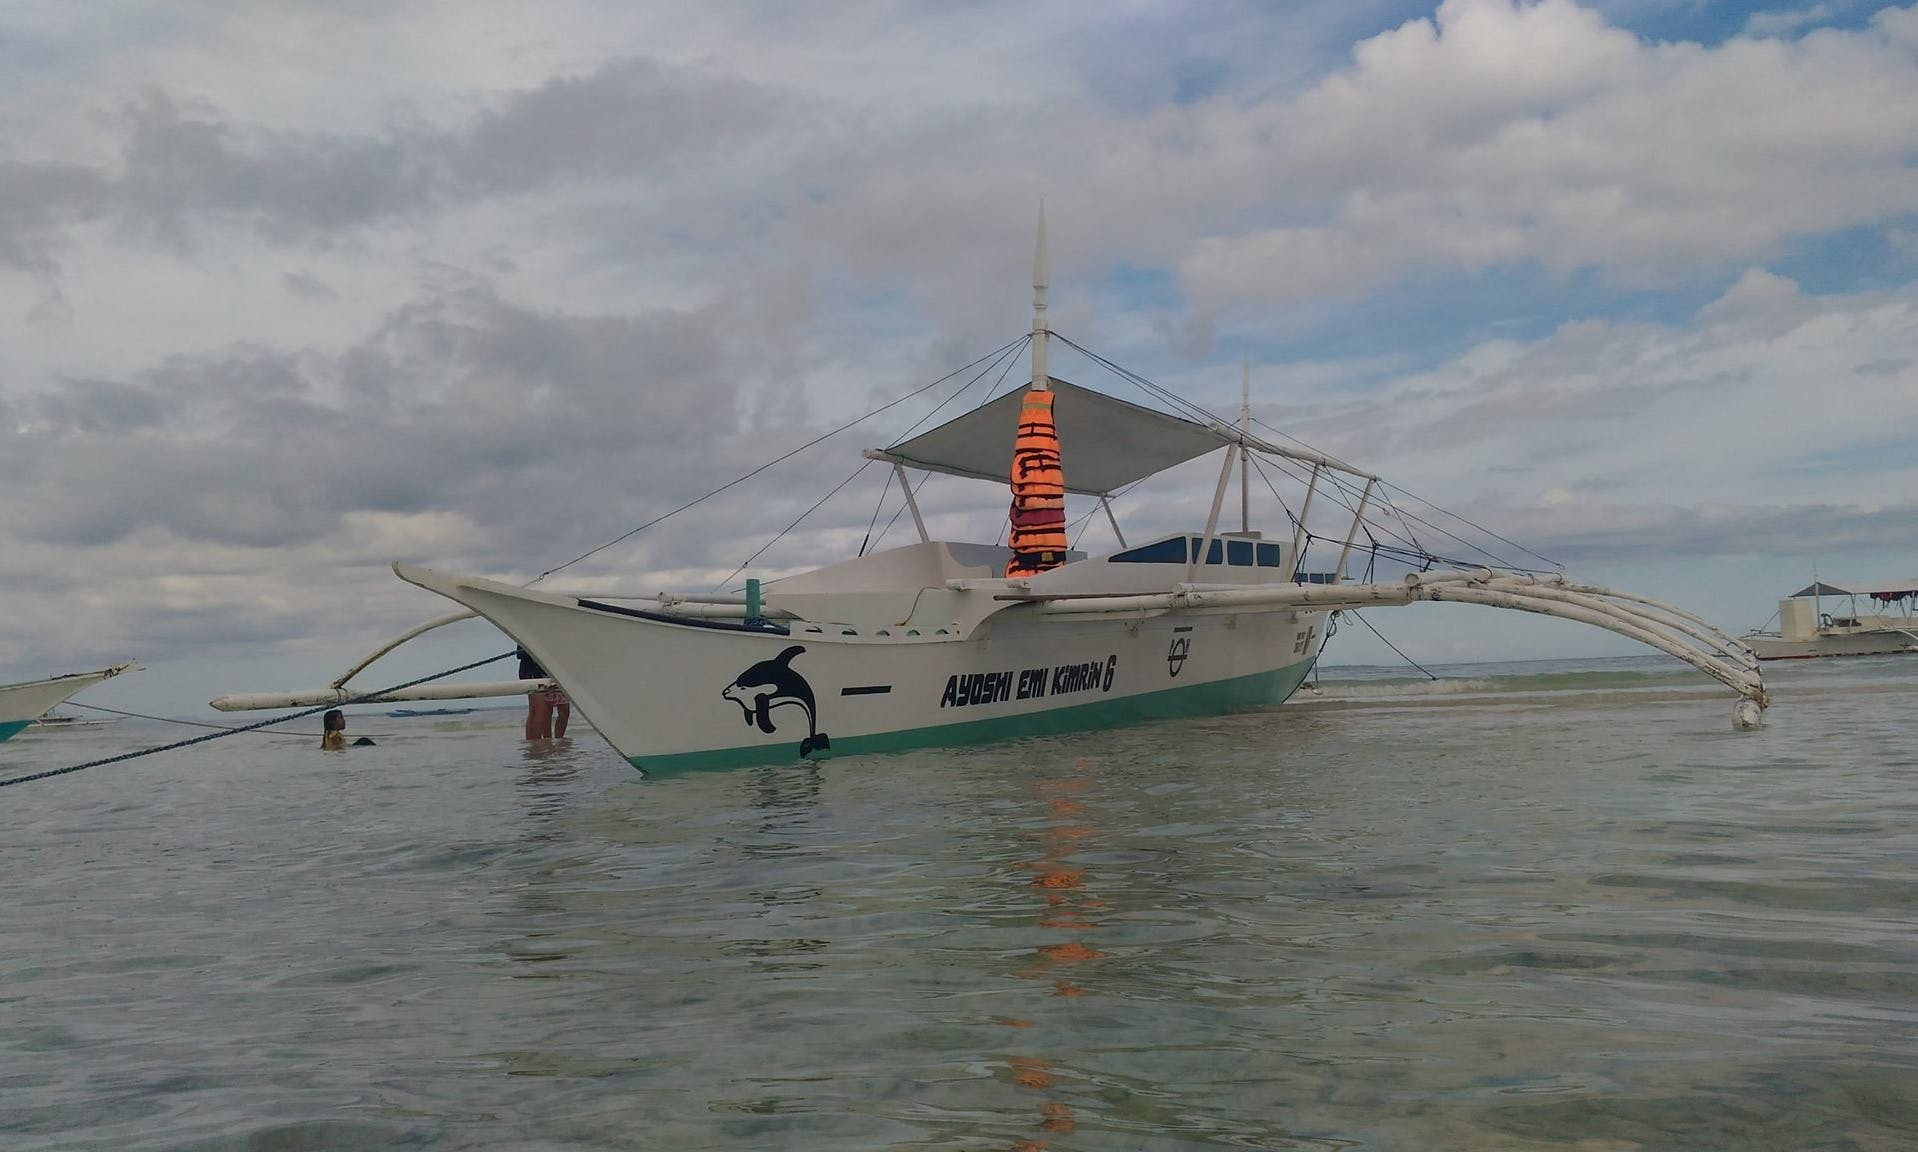 Dolphin Tour in Panglao, Philippines On-board A Traditional Boat for Up to 15 People